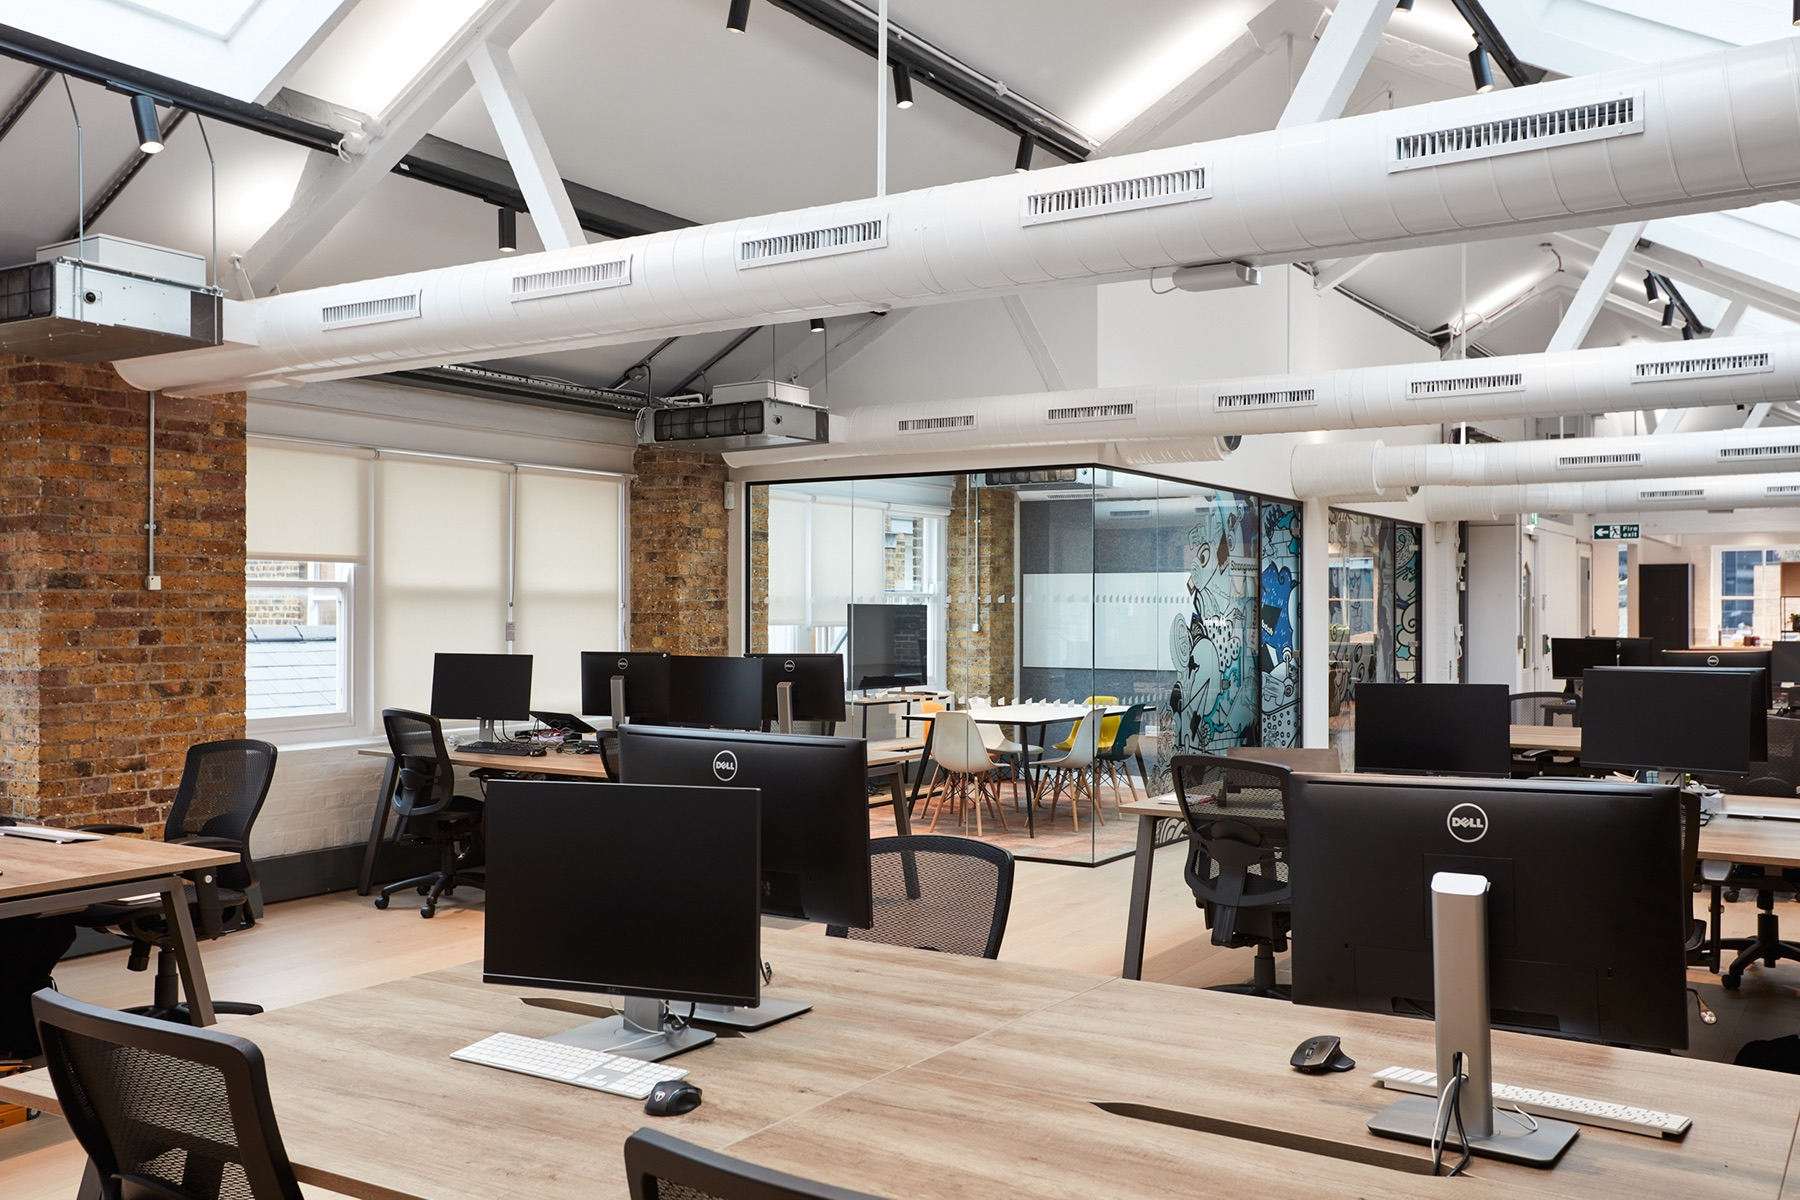 hutch-london-office-expansion-1